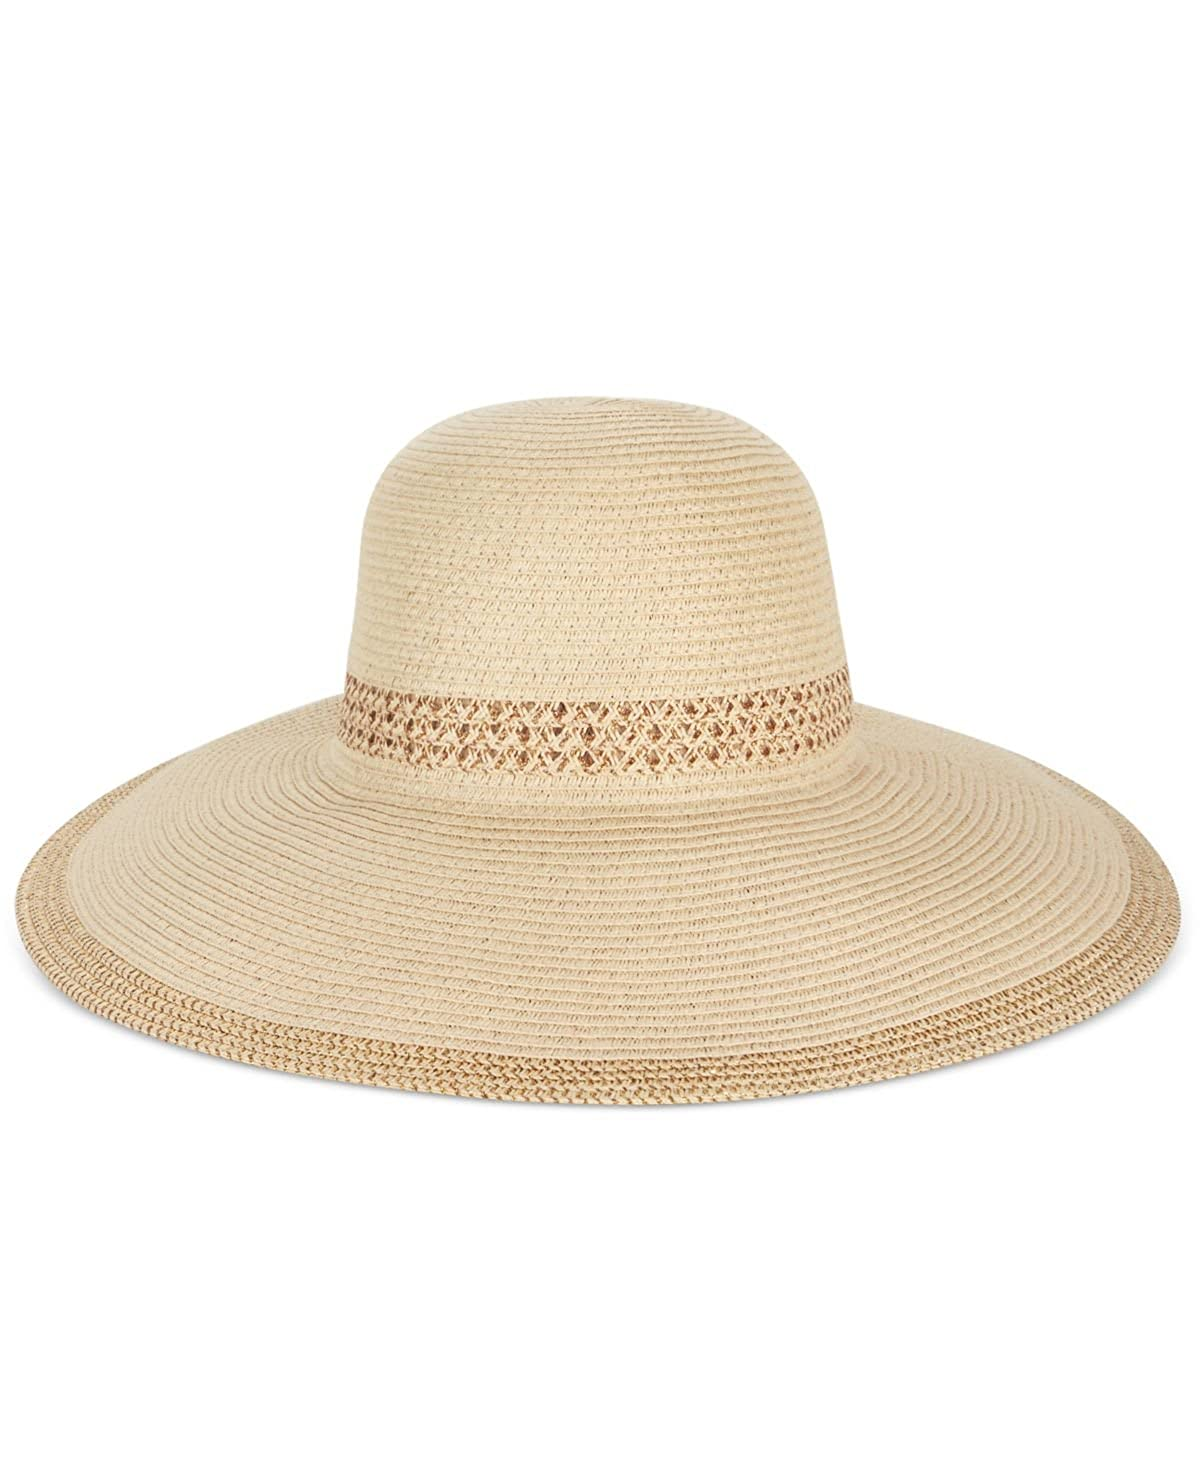 ed7b06de846 AUGUST HAT COMPANY Gold Metallic Trim Floppy Sun Hat at Amazon Women s  Clothing store